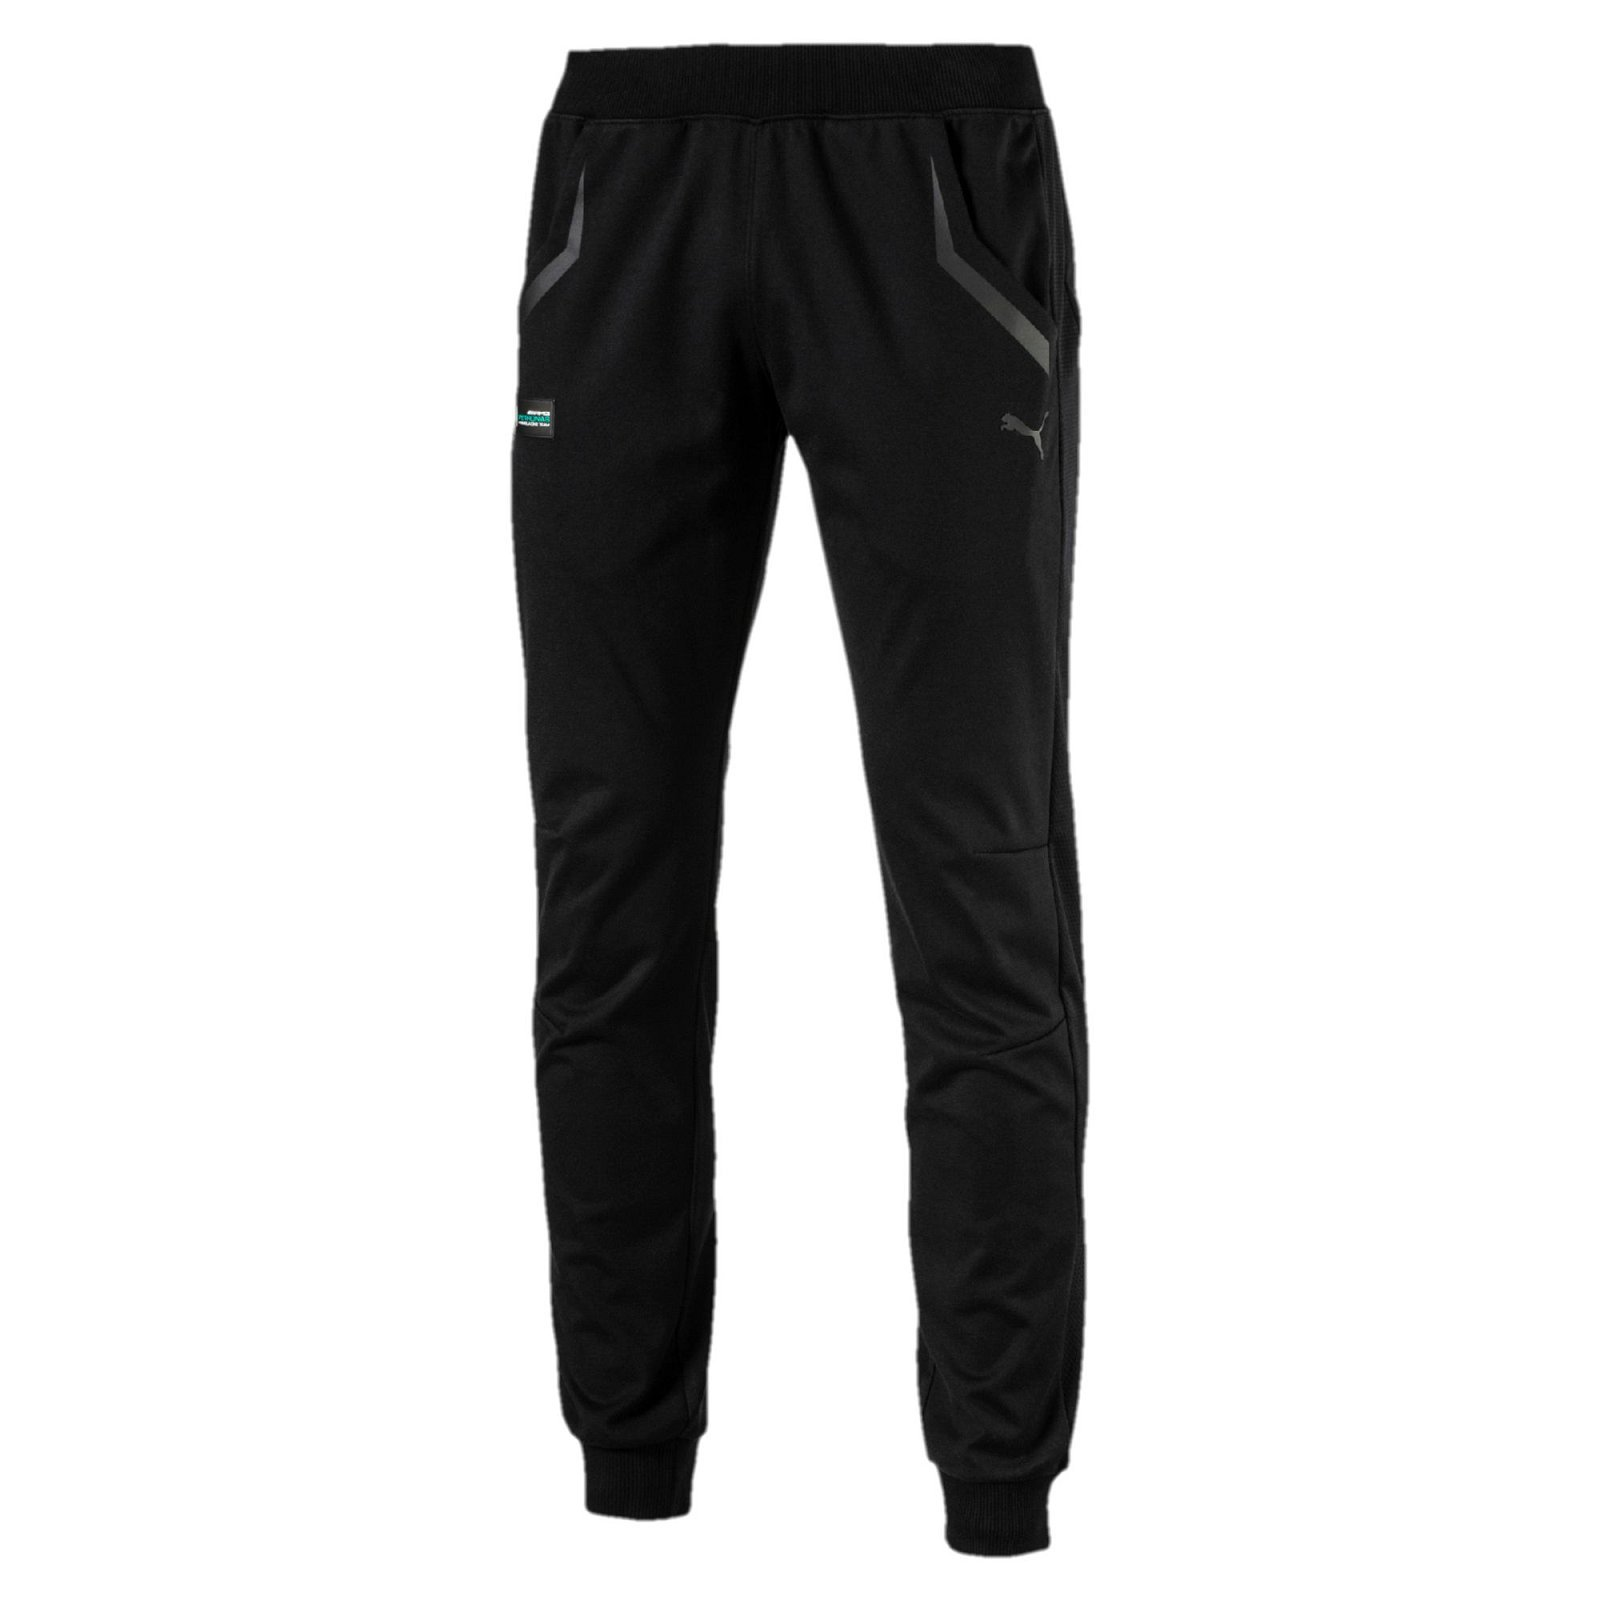 MAMGP Sweat Pants Puma Black